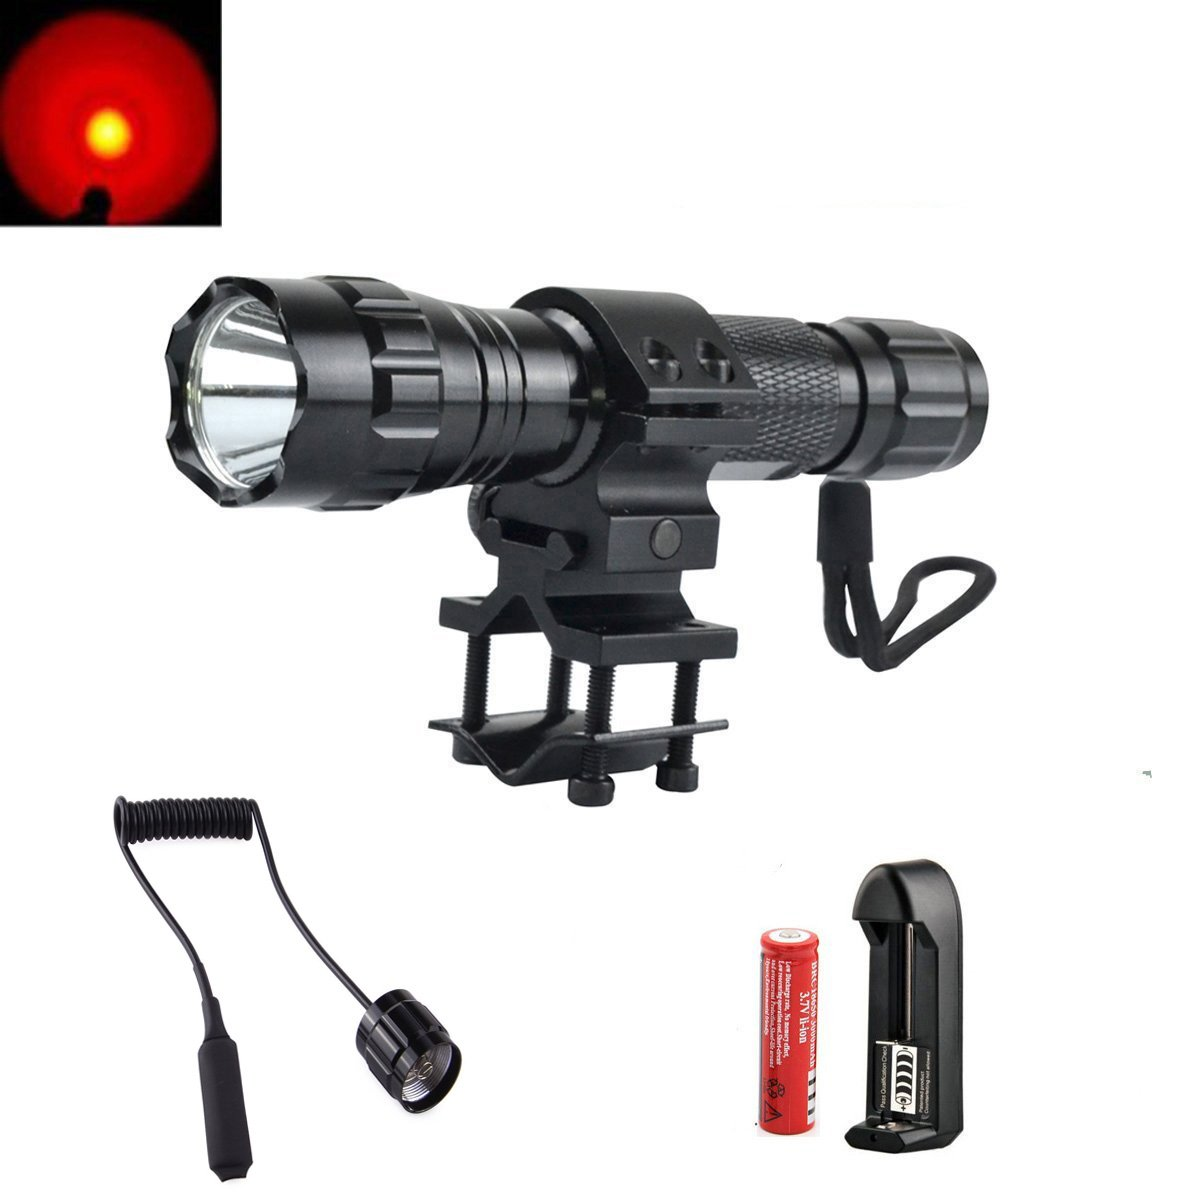 Shigoo 350lm Bright Red Hunting Light Led Coyote Hog Pig How To Make A Flashlight Bulb 8211 For 2 15 Volt Batterie Varmint Predator Lights Torch With Mount Remote Pressure Switch